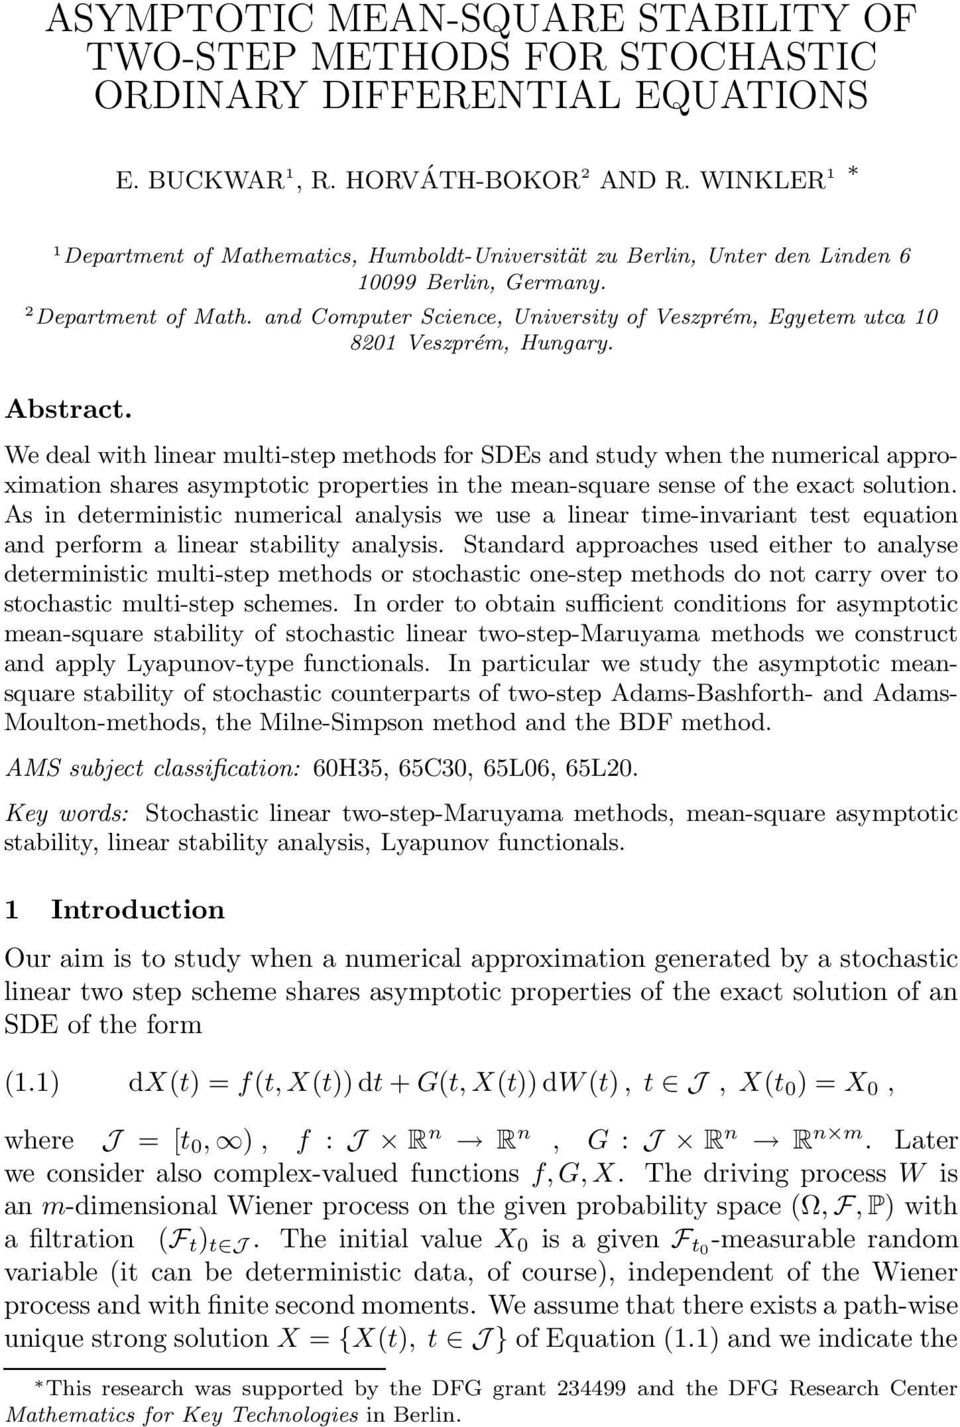 Abstract. We deal with linear multi-step methods for SDEs and study when the numerical approximation shares asymptotic properties in the mean-square sense of the exact solution.